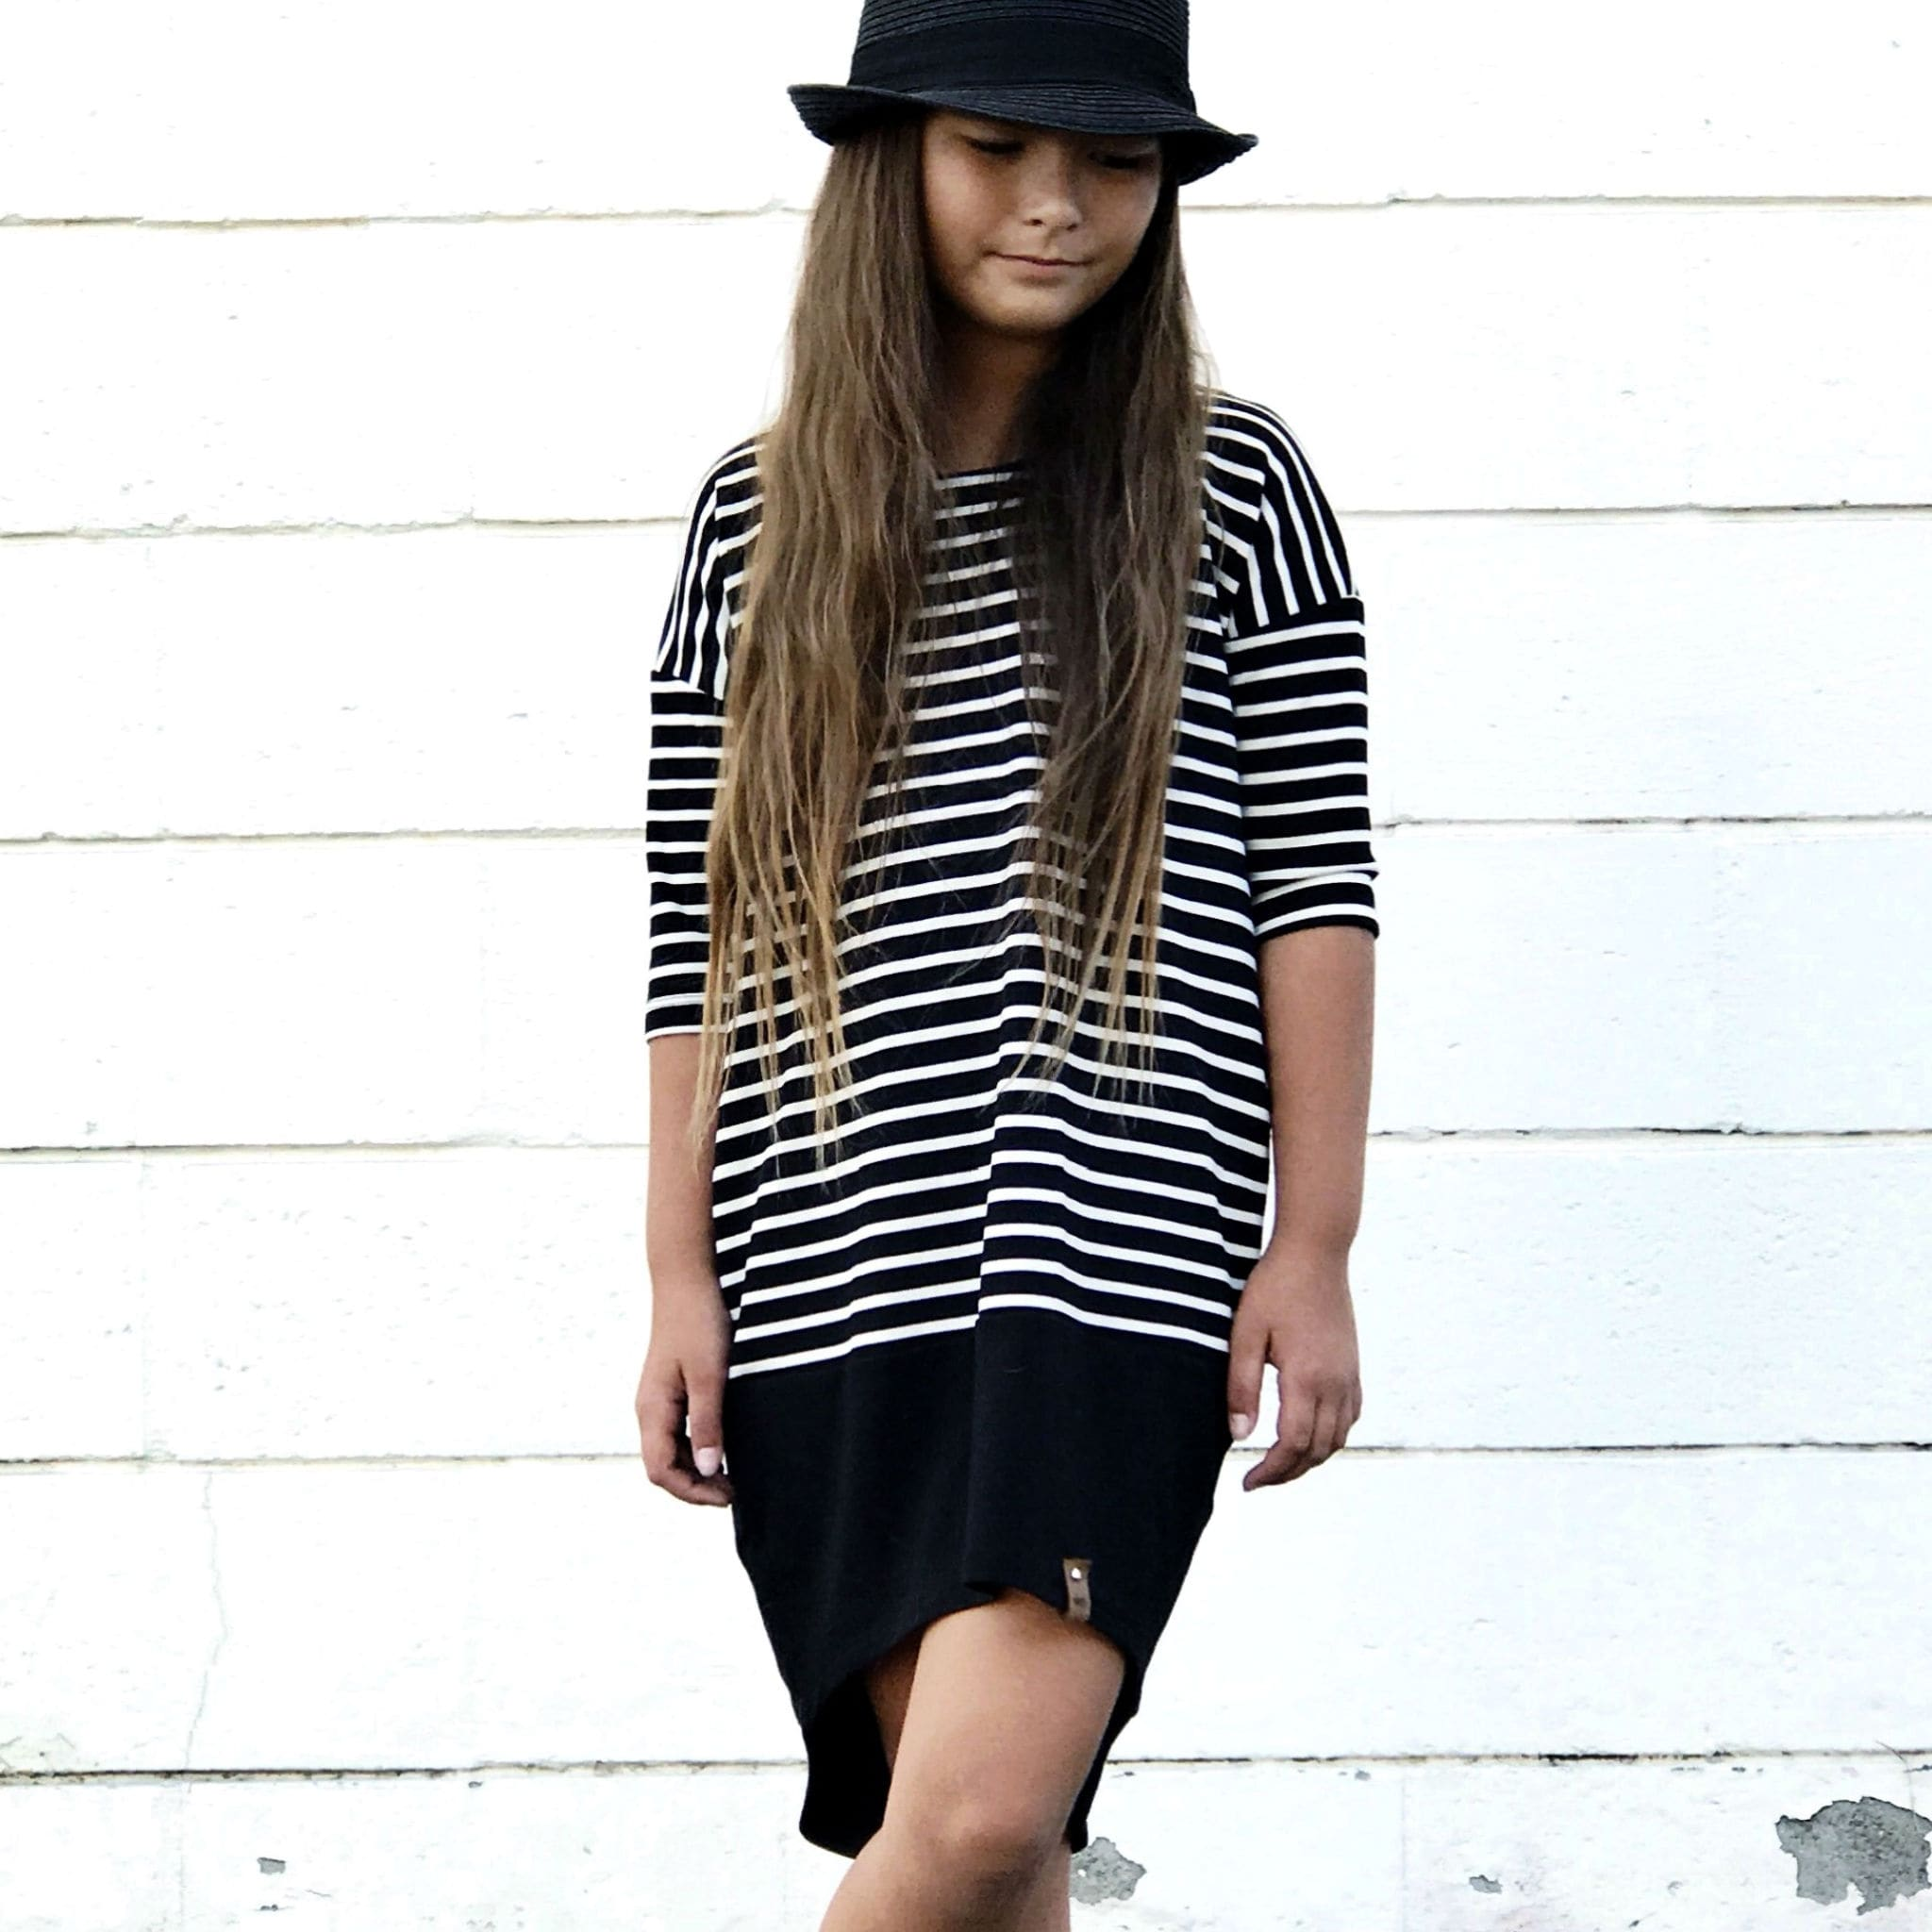 Stylish girl in monochrome striped dress by Mini Street